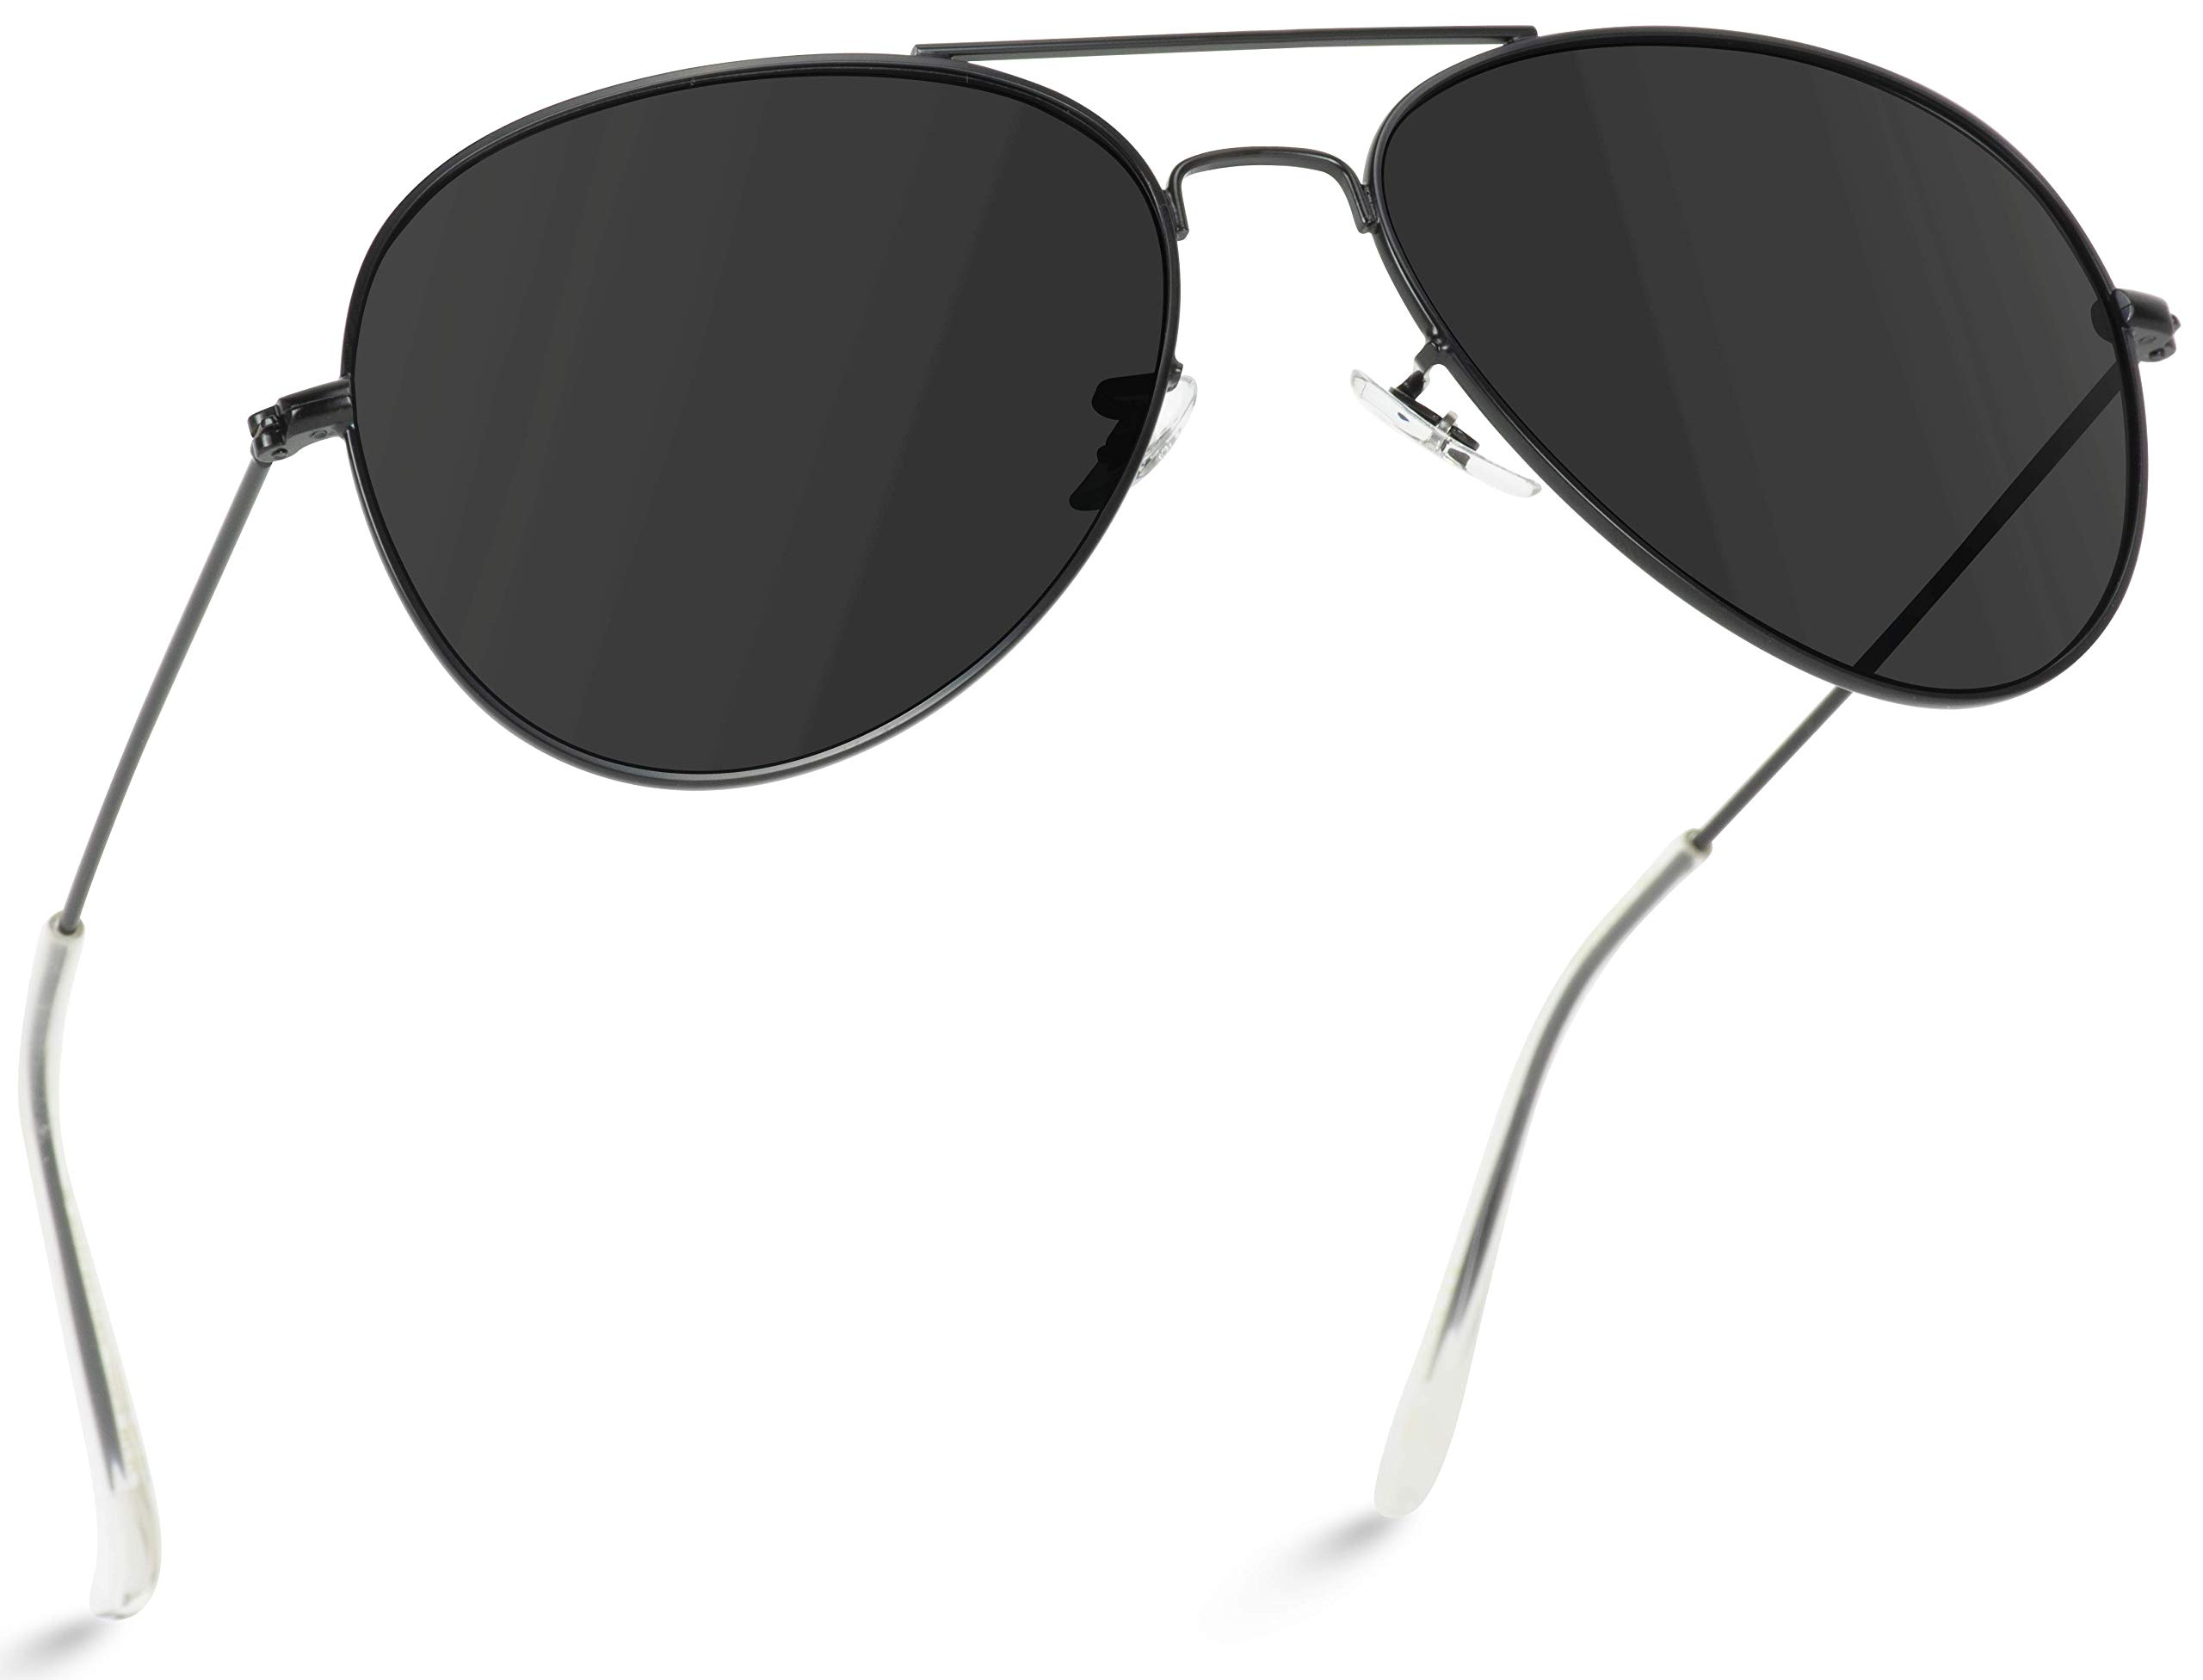 WearMe Pro - Polarized Metal Frame Pilot Style Aviator Sunglasses (Full Black, 60) by WearMe Pro